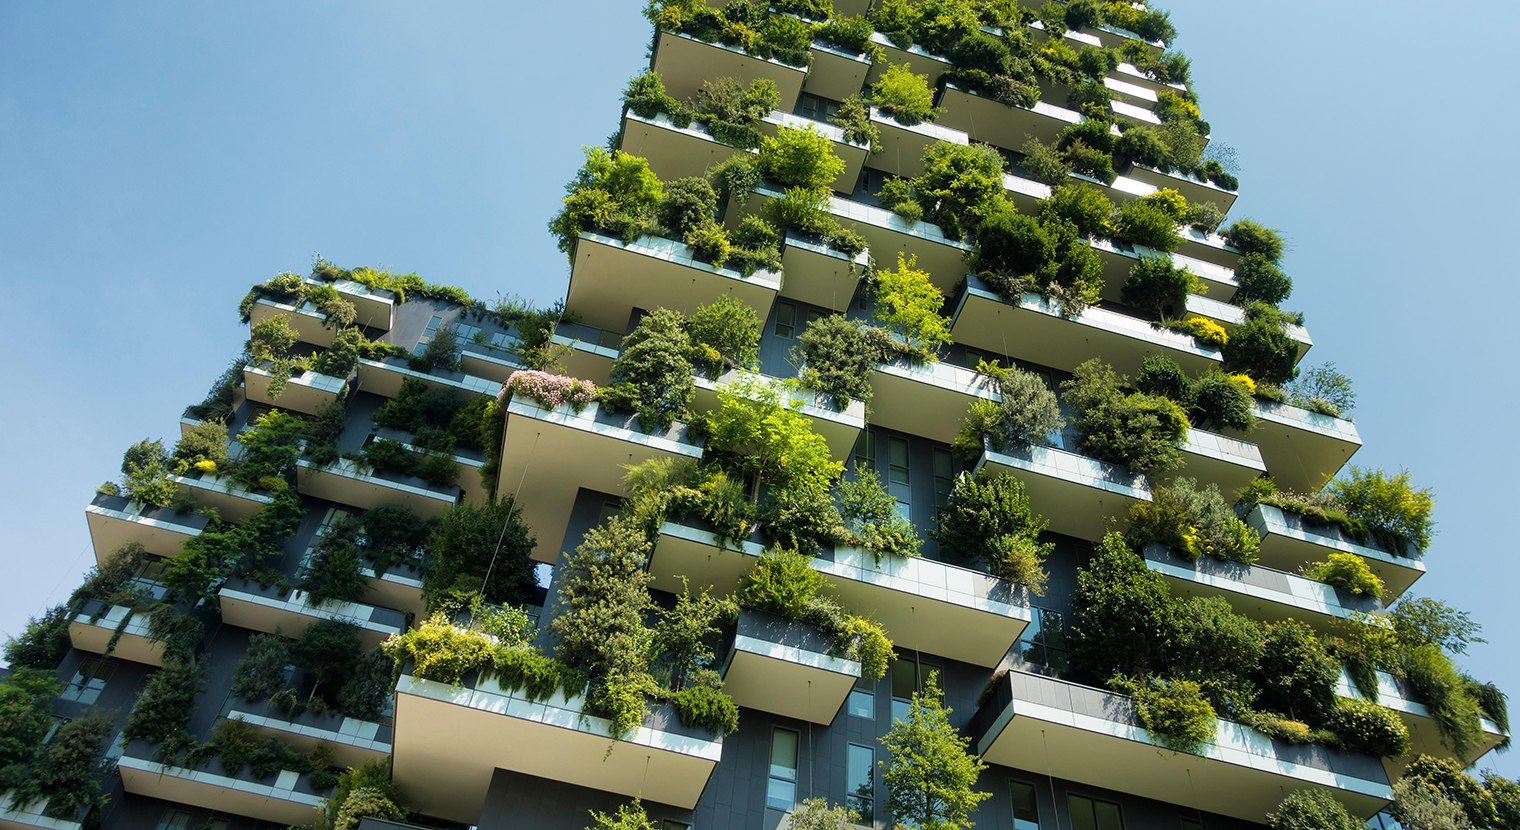 Greener buildings key to cutting emissions